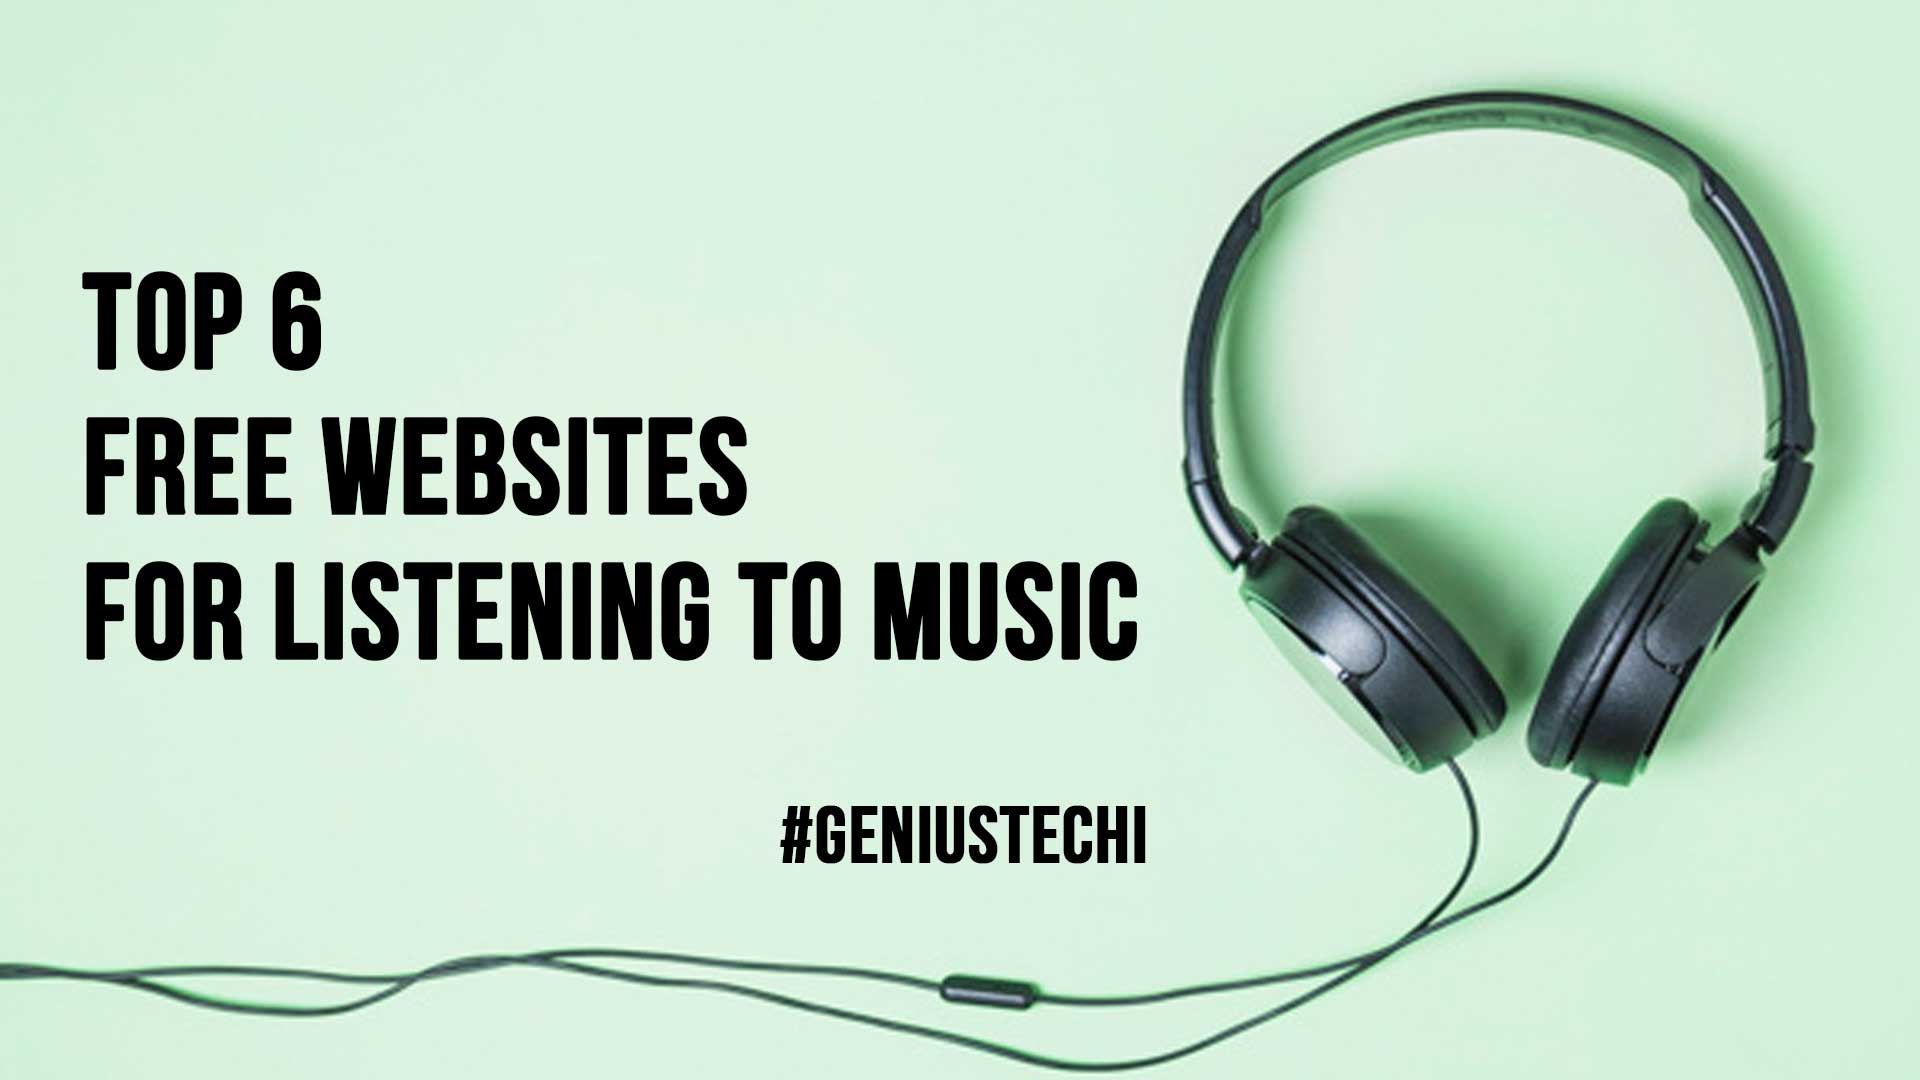 Top 6 Free Websites For Listening to Music